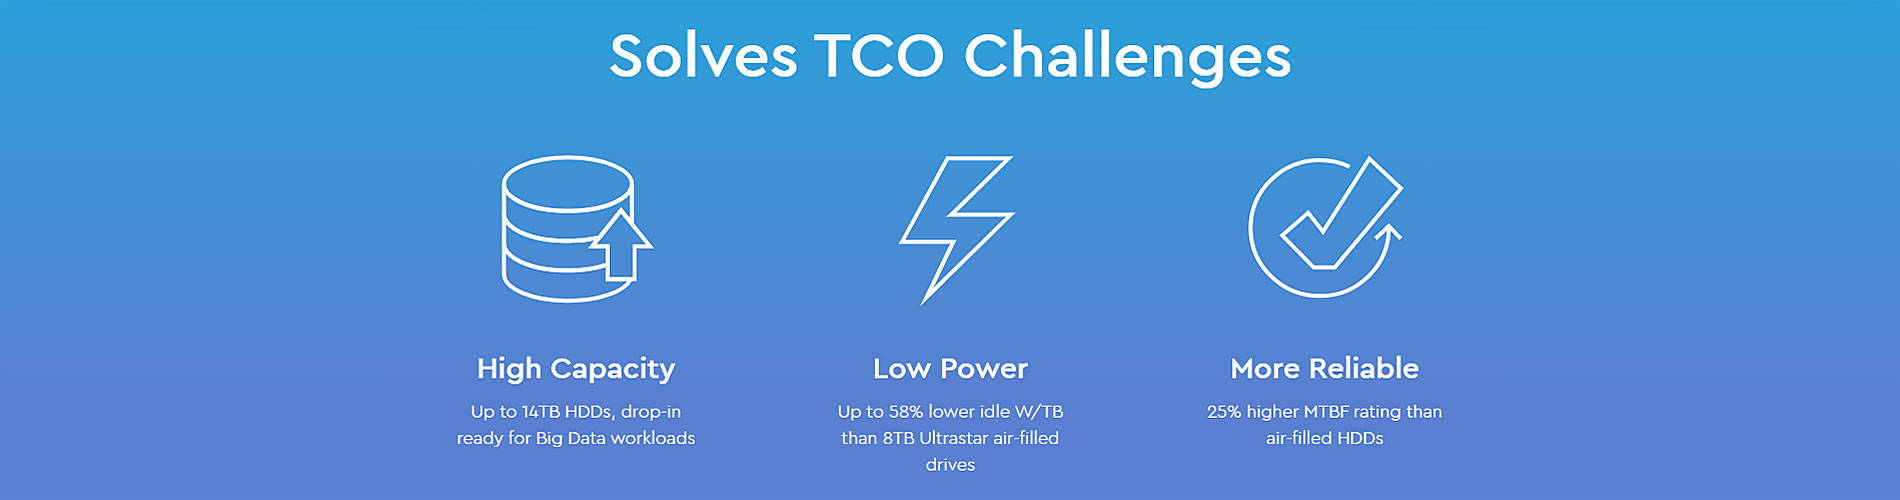 Solves TCO Challenges